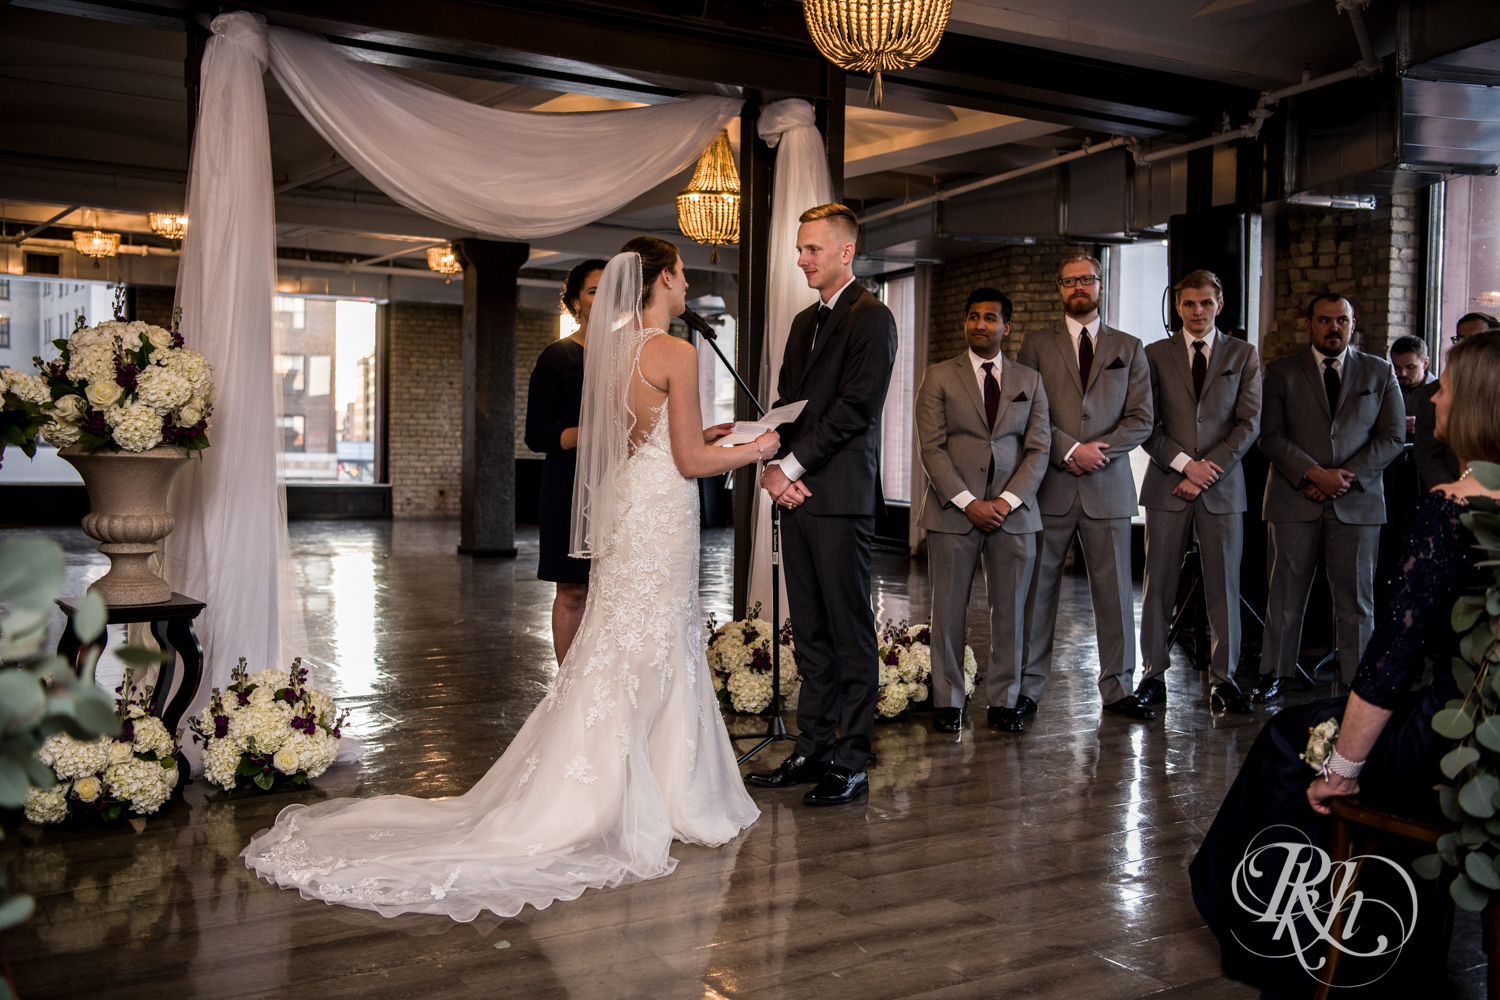 Jillian & Jared - Minnesota Wedding Photography - Lumber Exchange Event Center - RKH Images - Blog (44 of 87).jpg